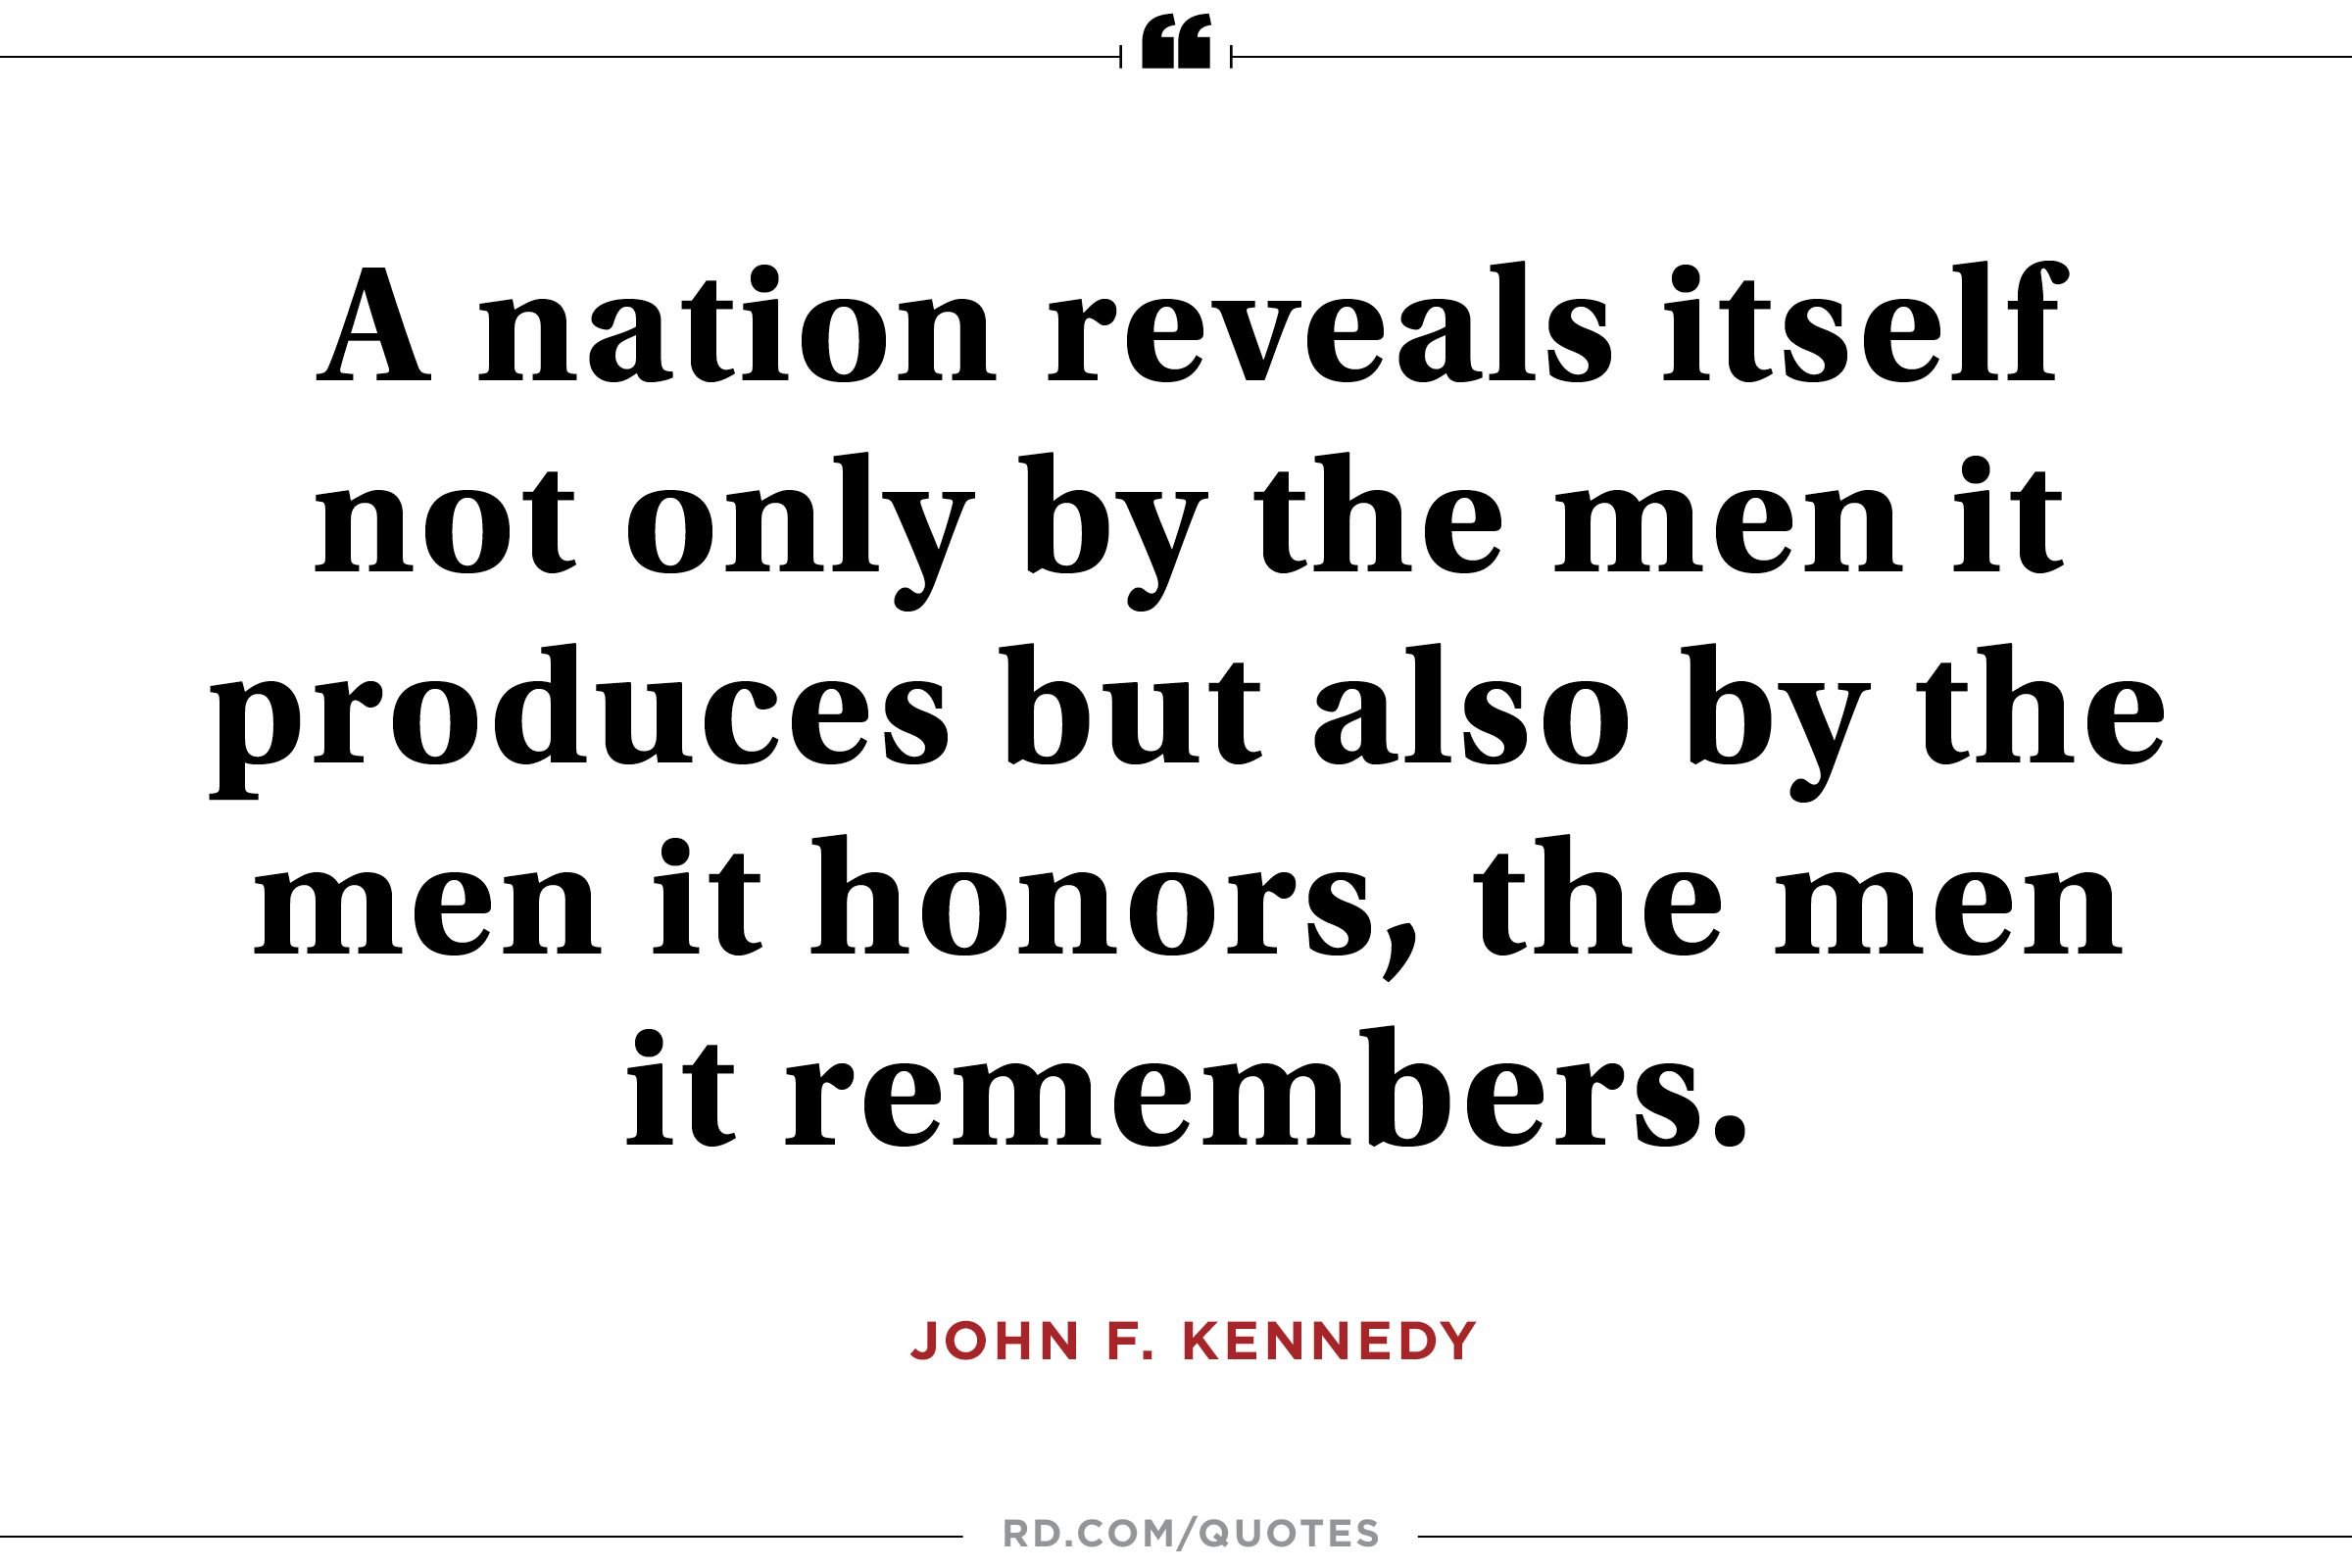 JFK on remembering good men